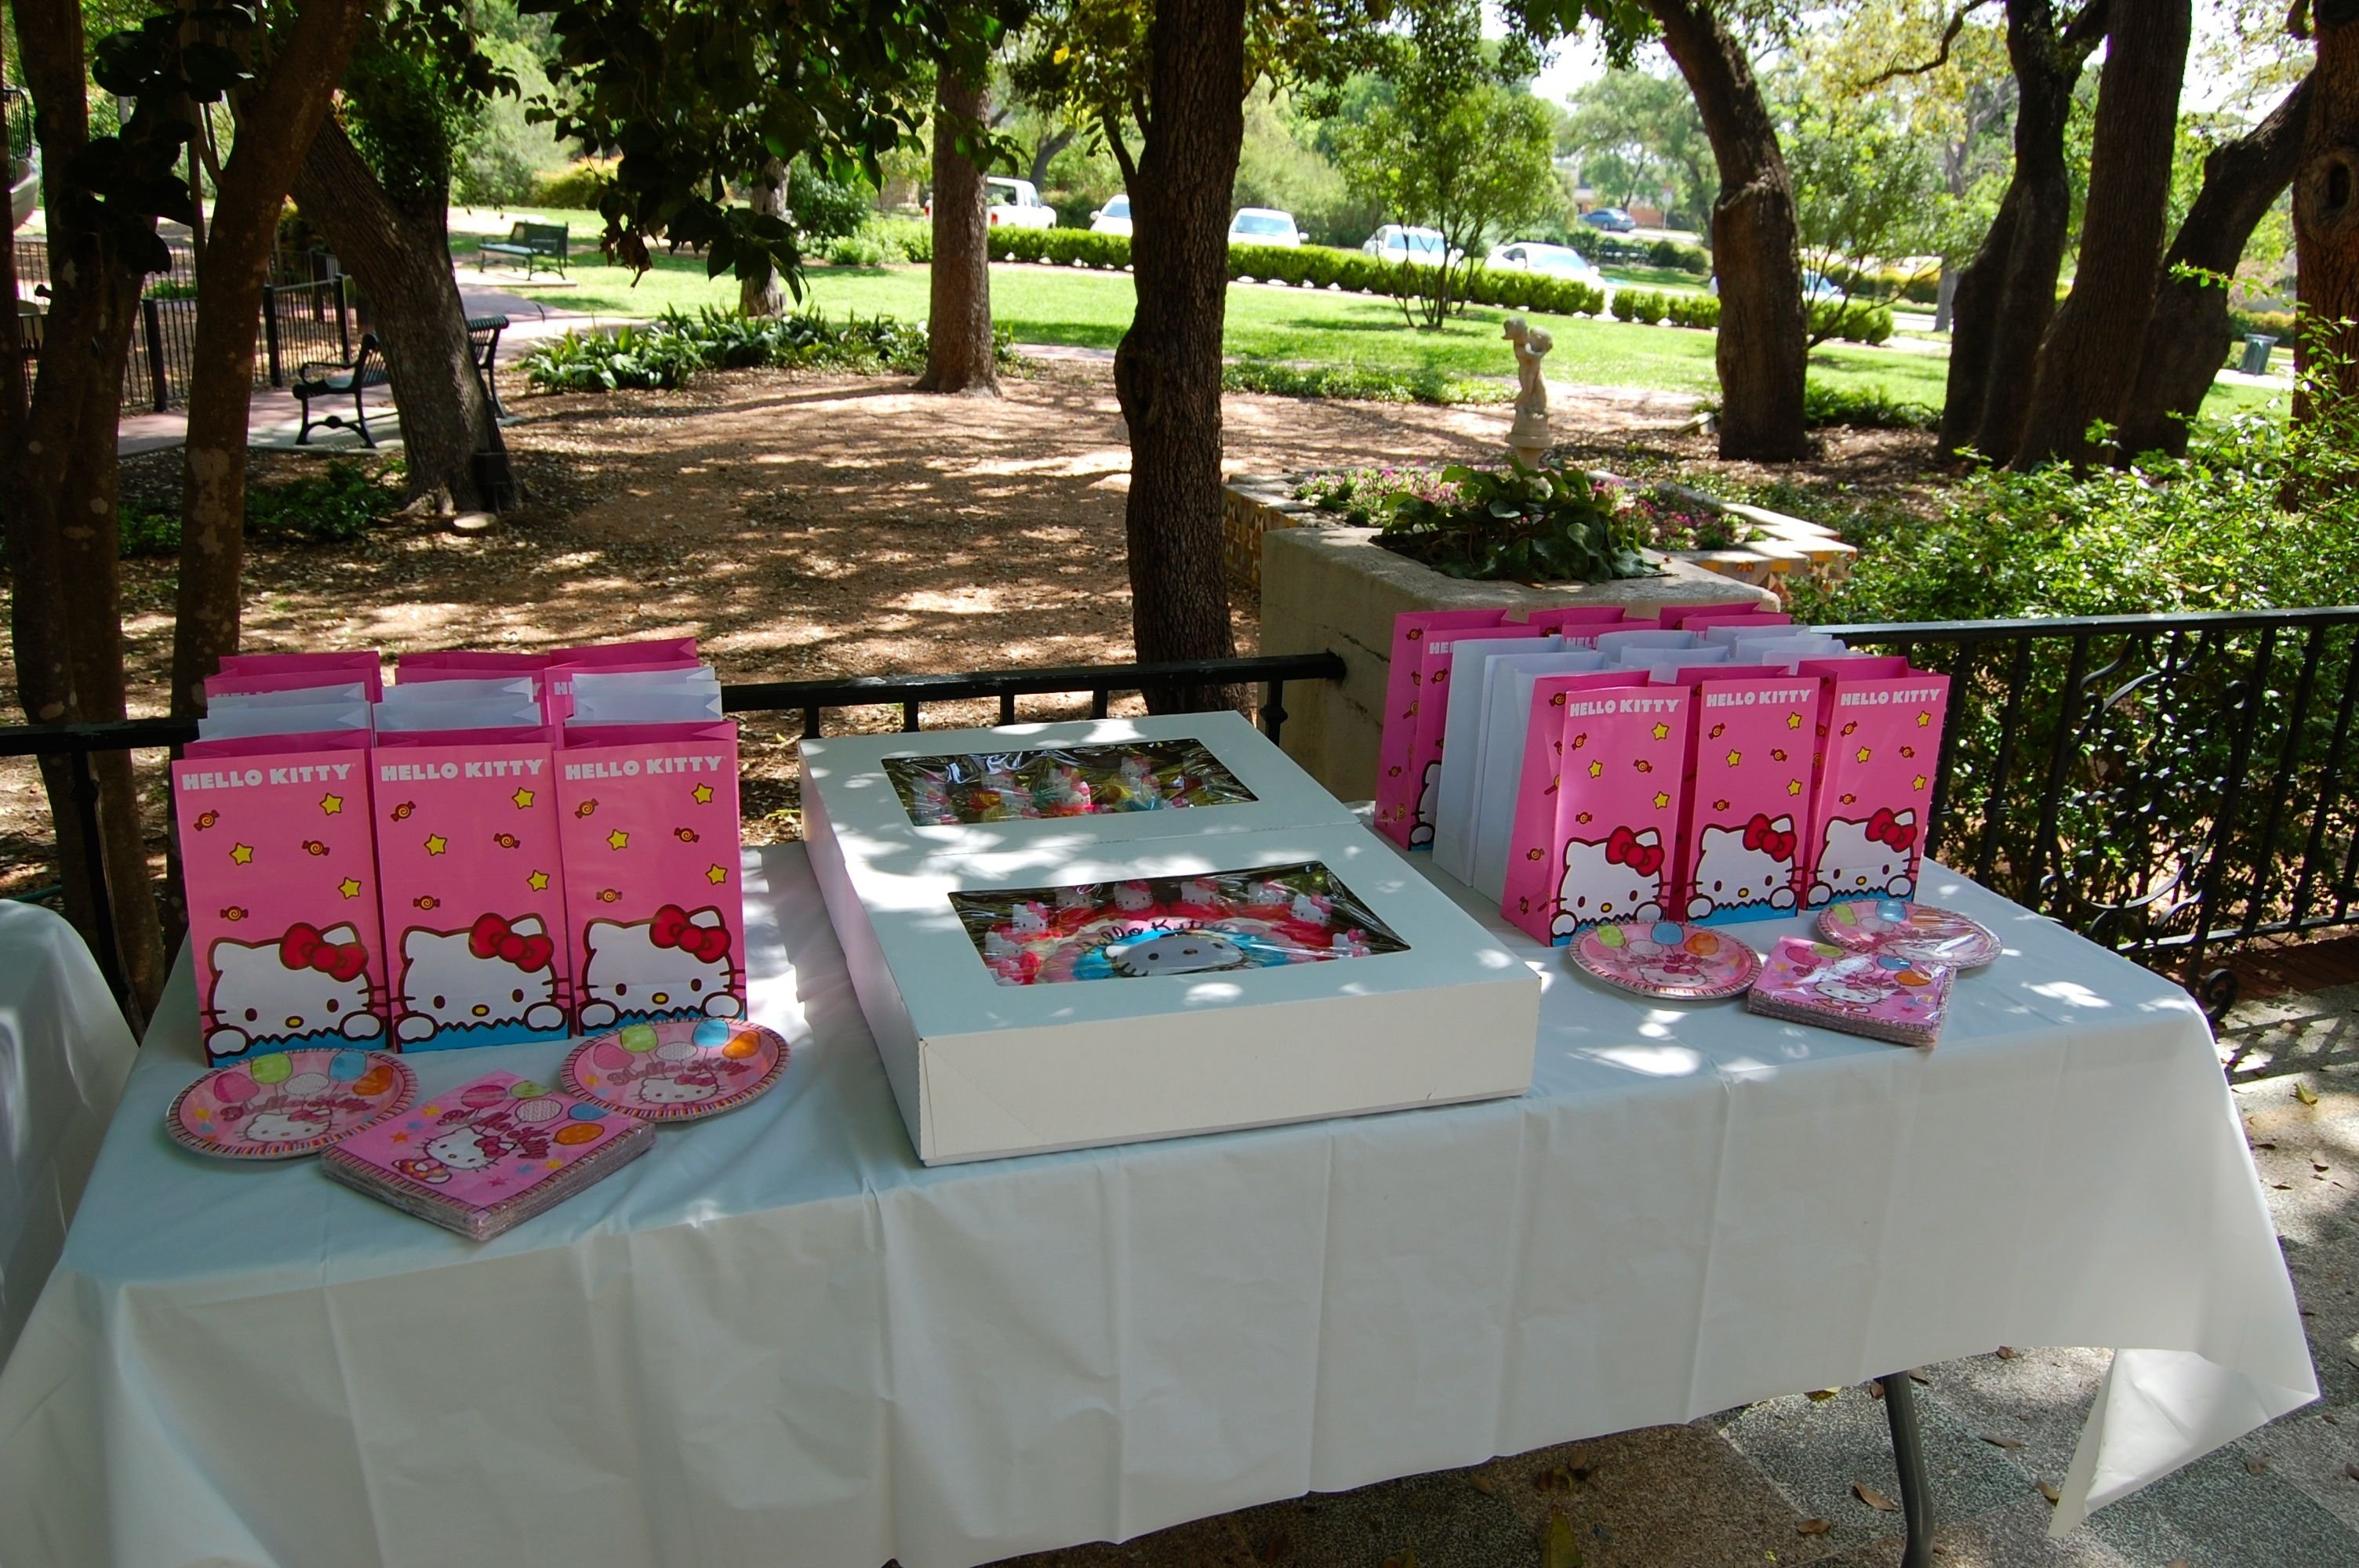 10 Stylish Birthday Party Ideas San Antonio landa library for a beautiful and affordable birthday party in the 1 2020